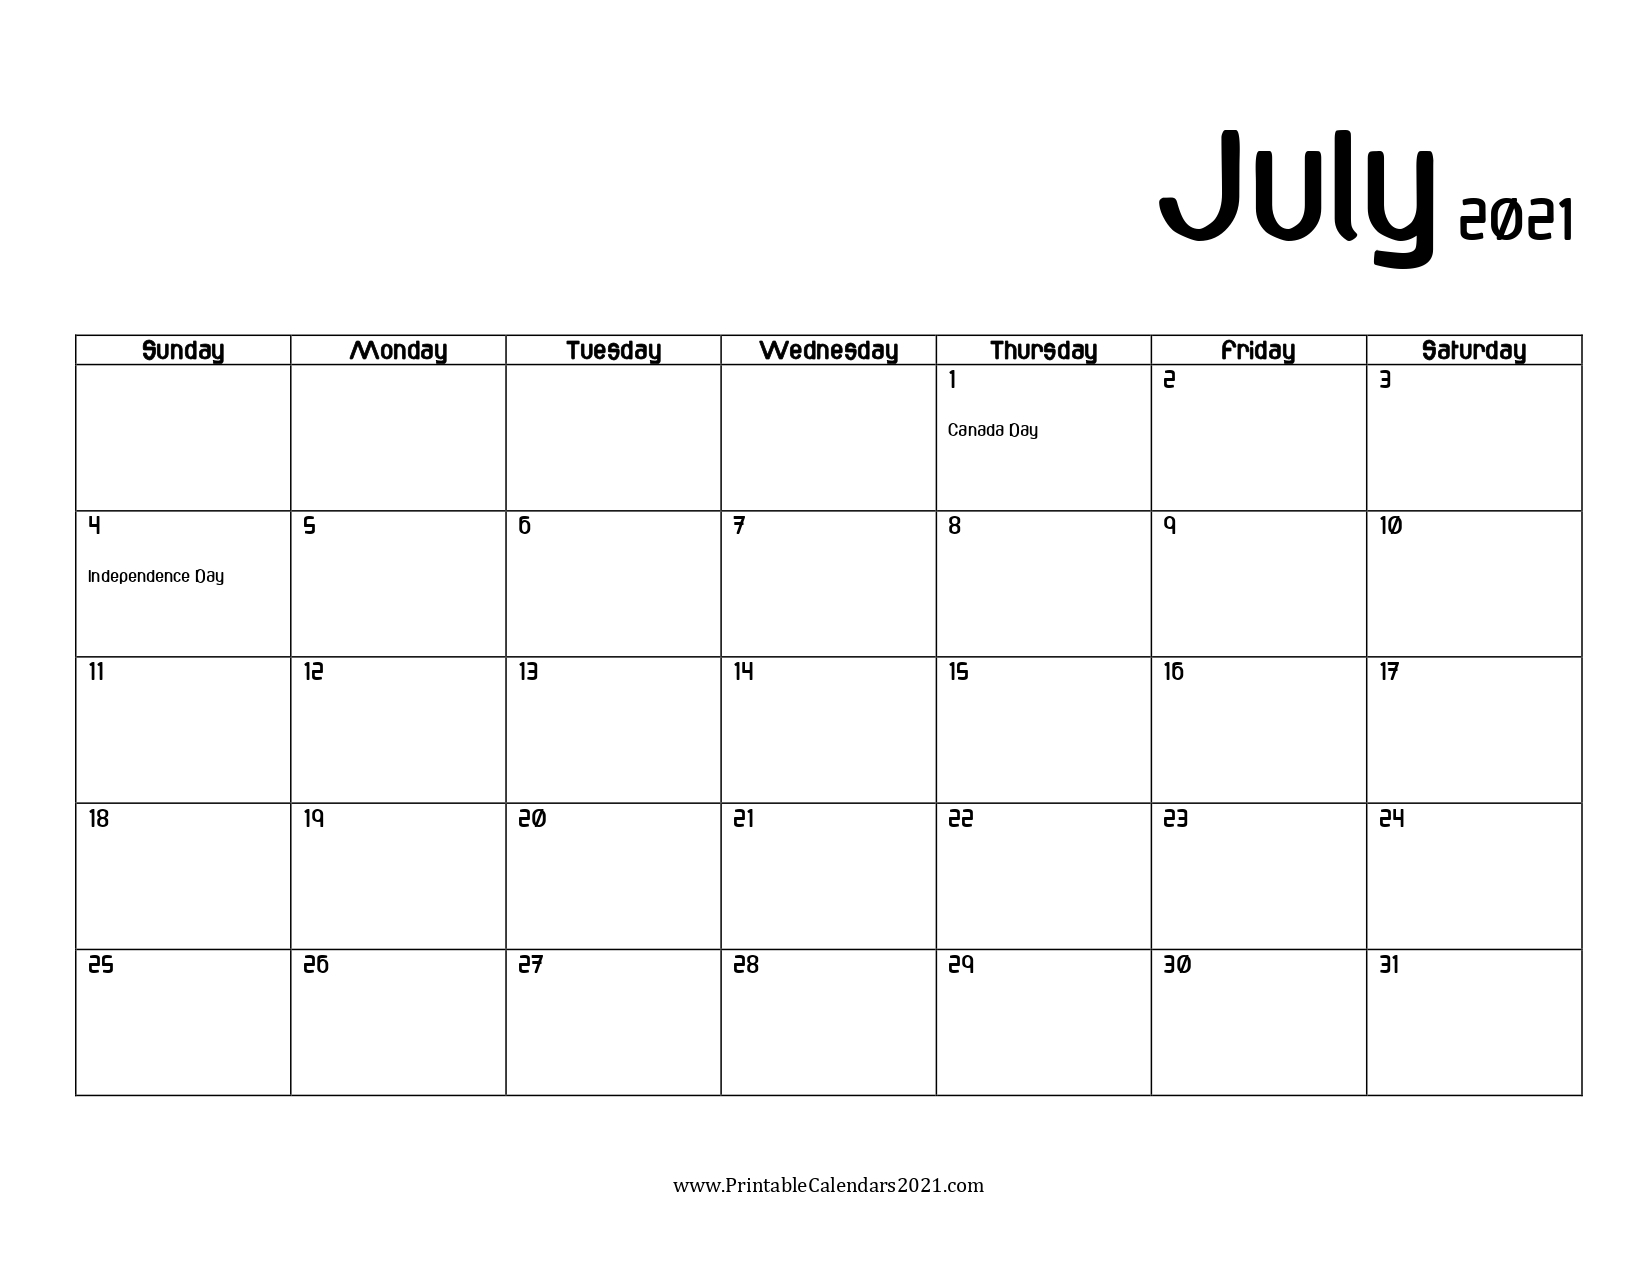 Get Print Free July 2021 Calendar Without Downloading